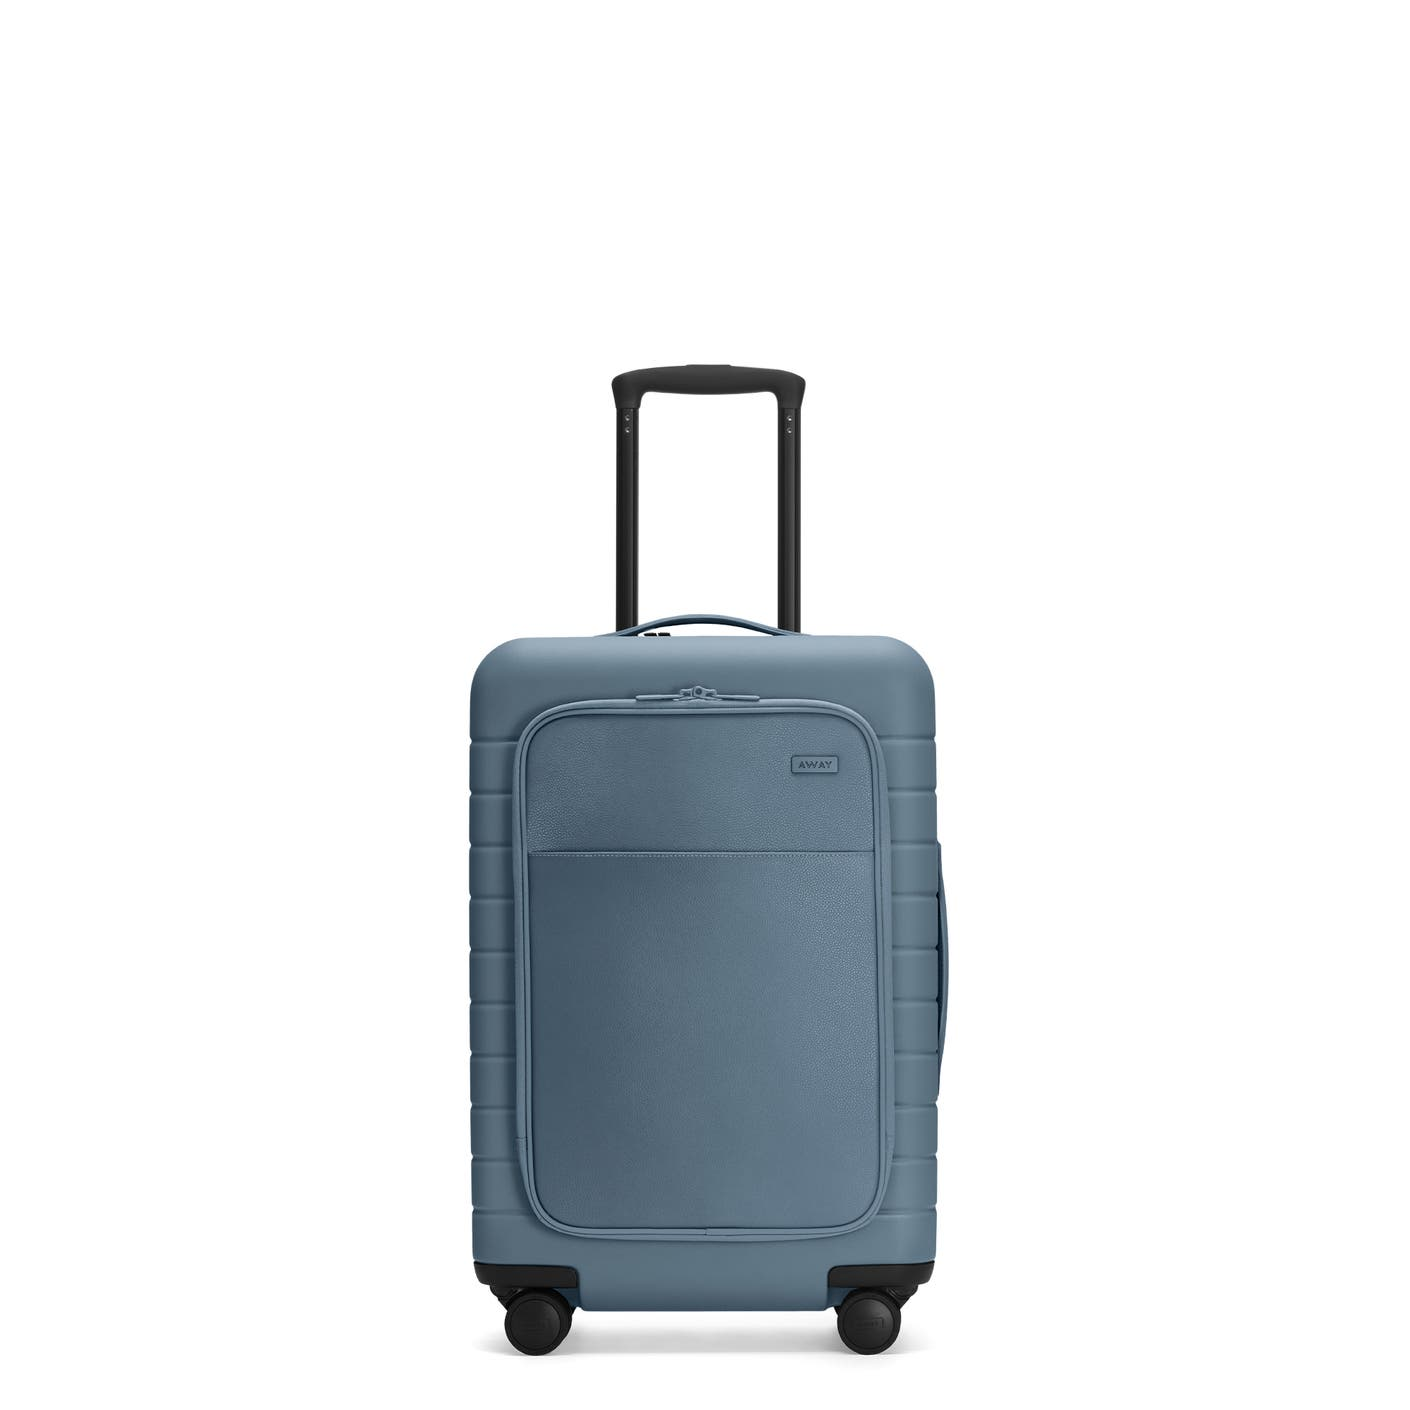 The Bigger Carry-On with Pocket